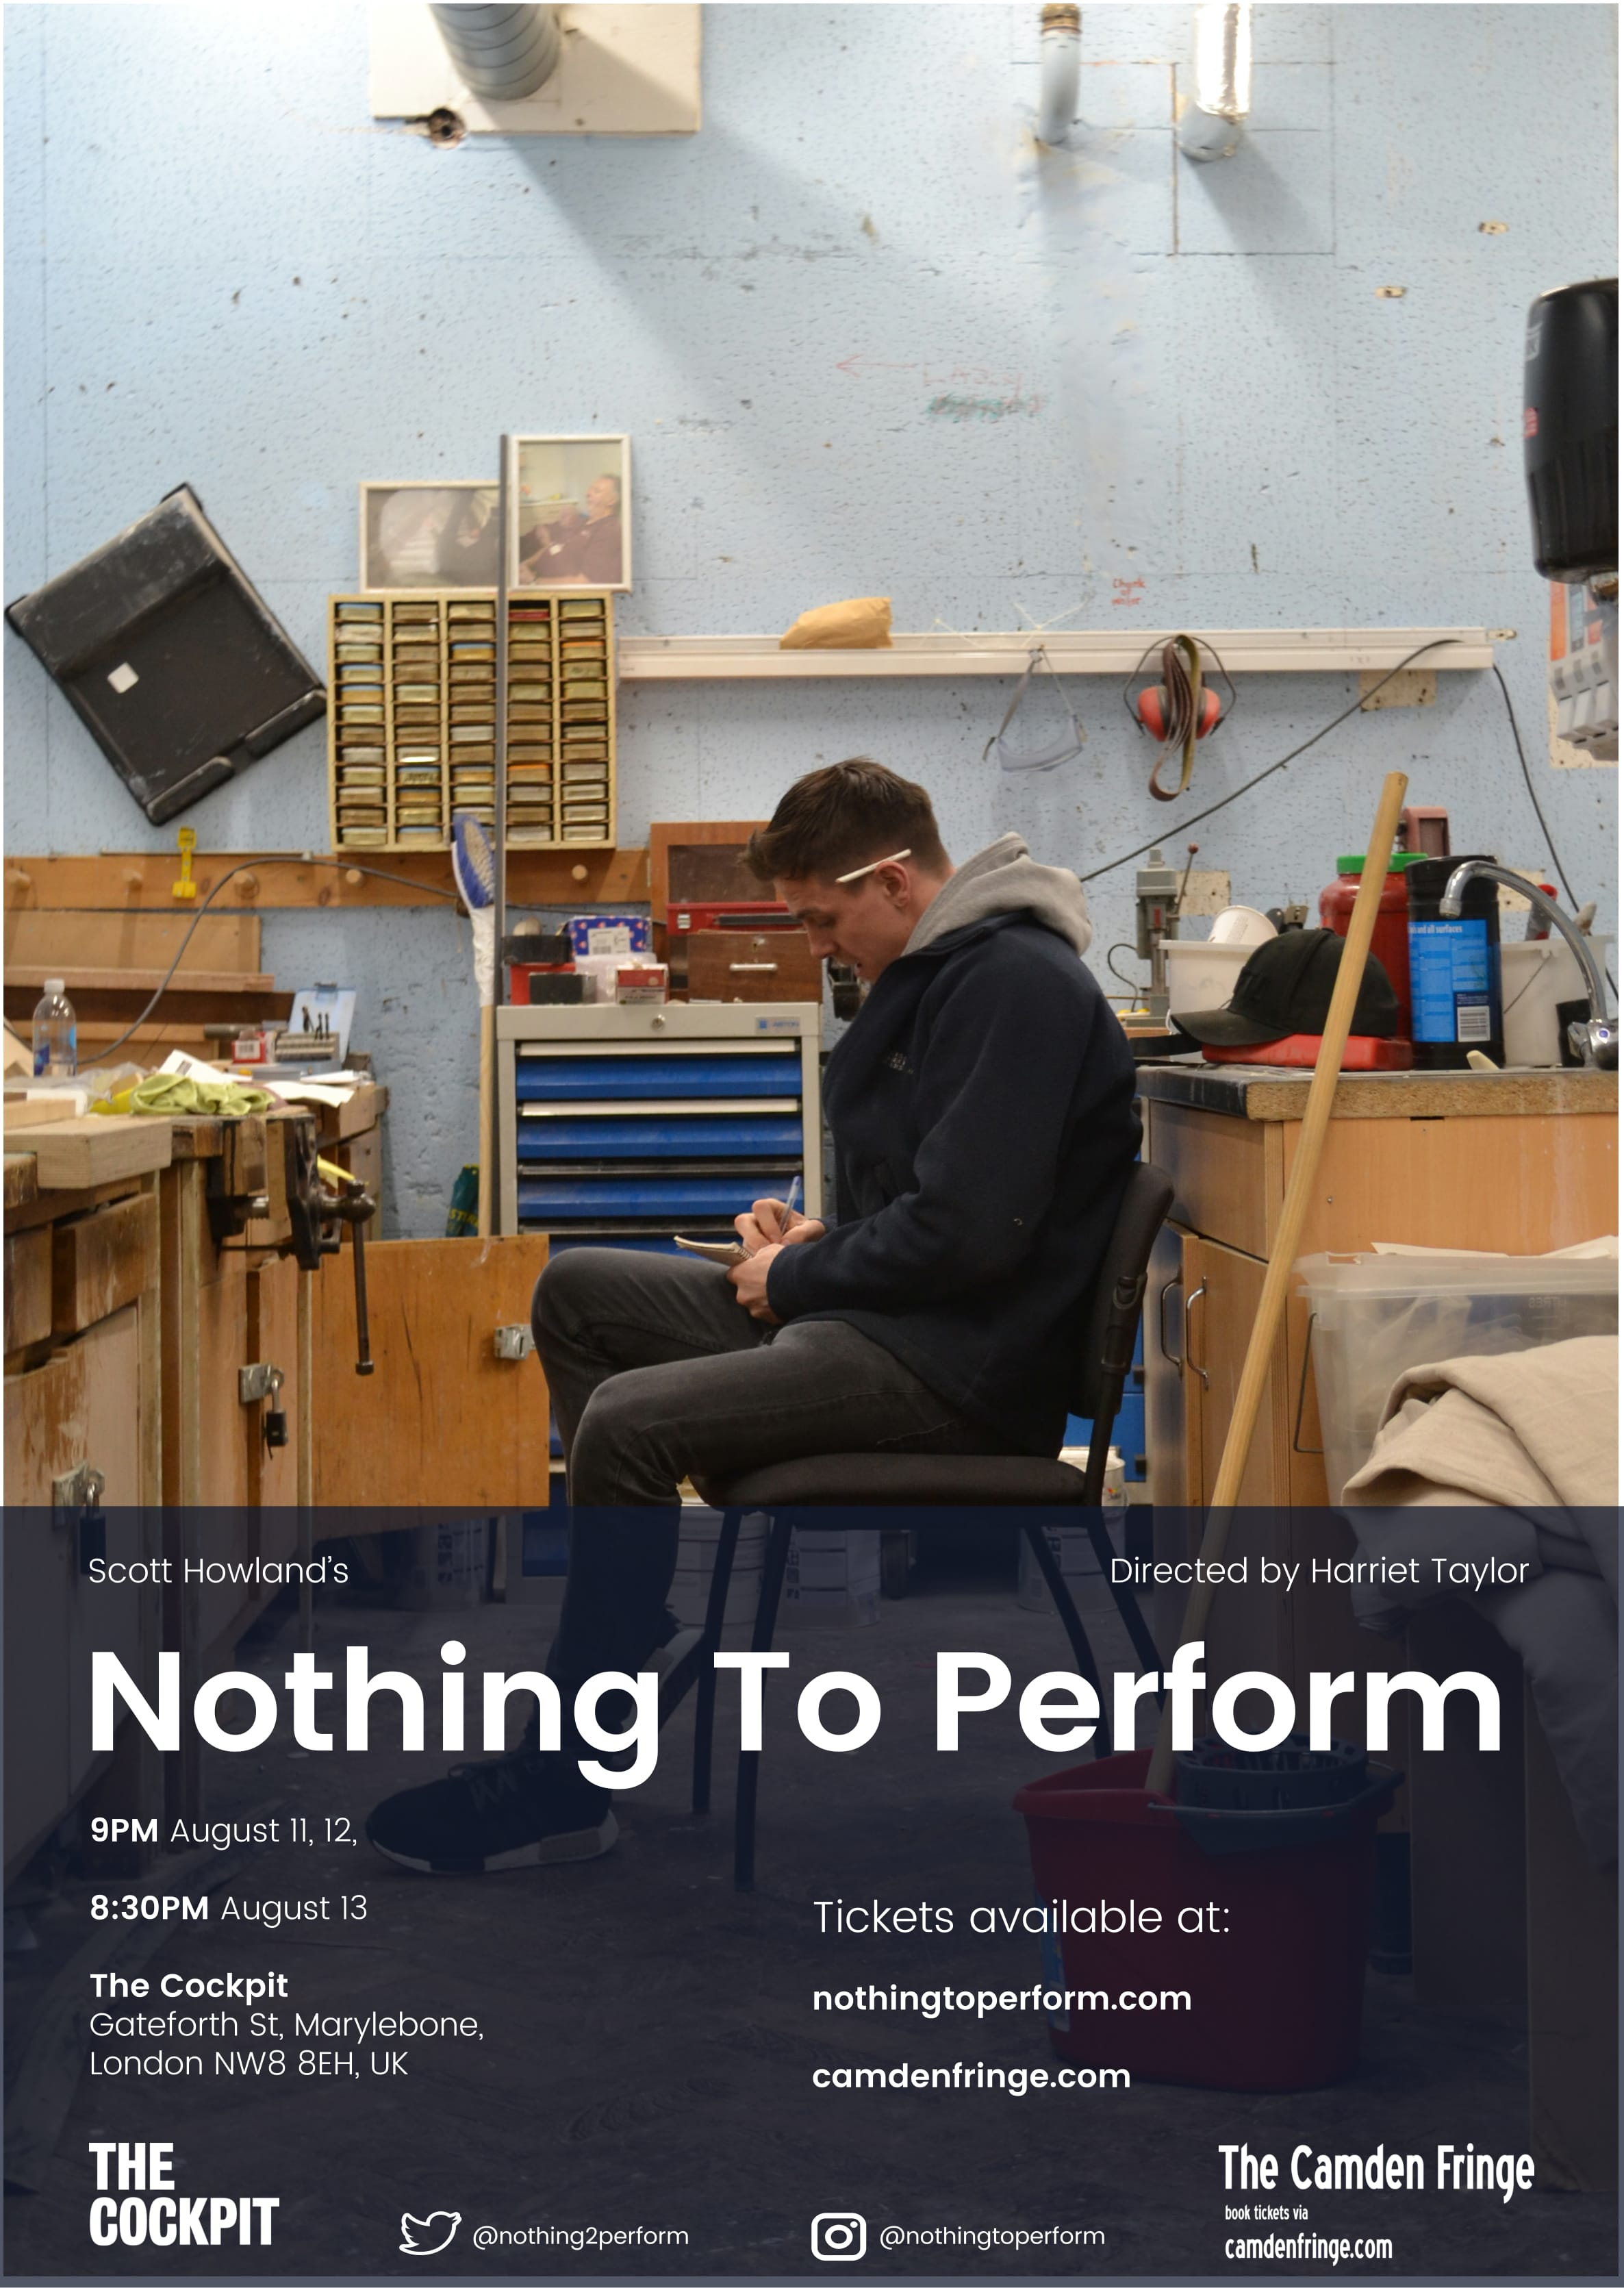 nothing-to-perform-poster-2-1.jpg